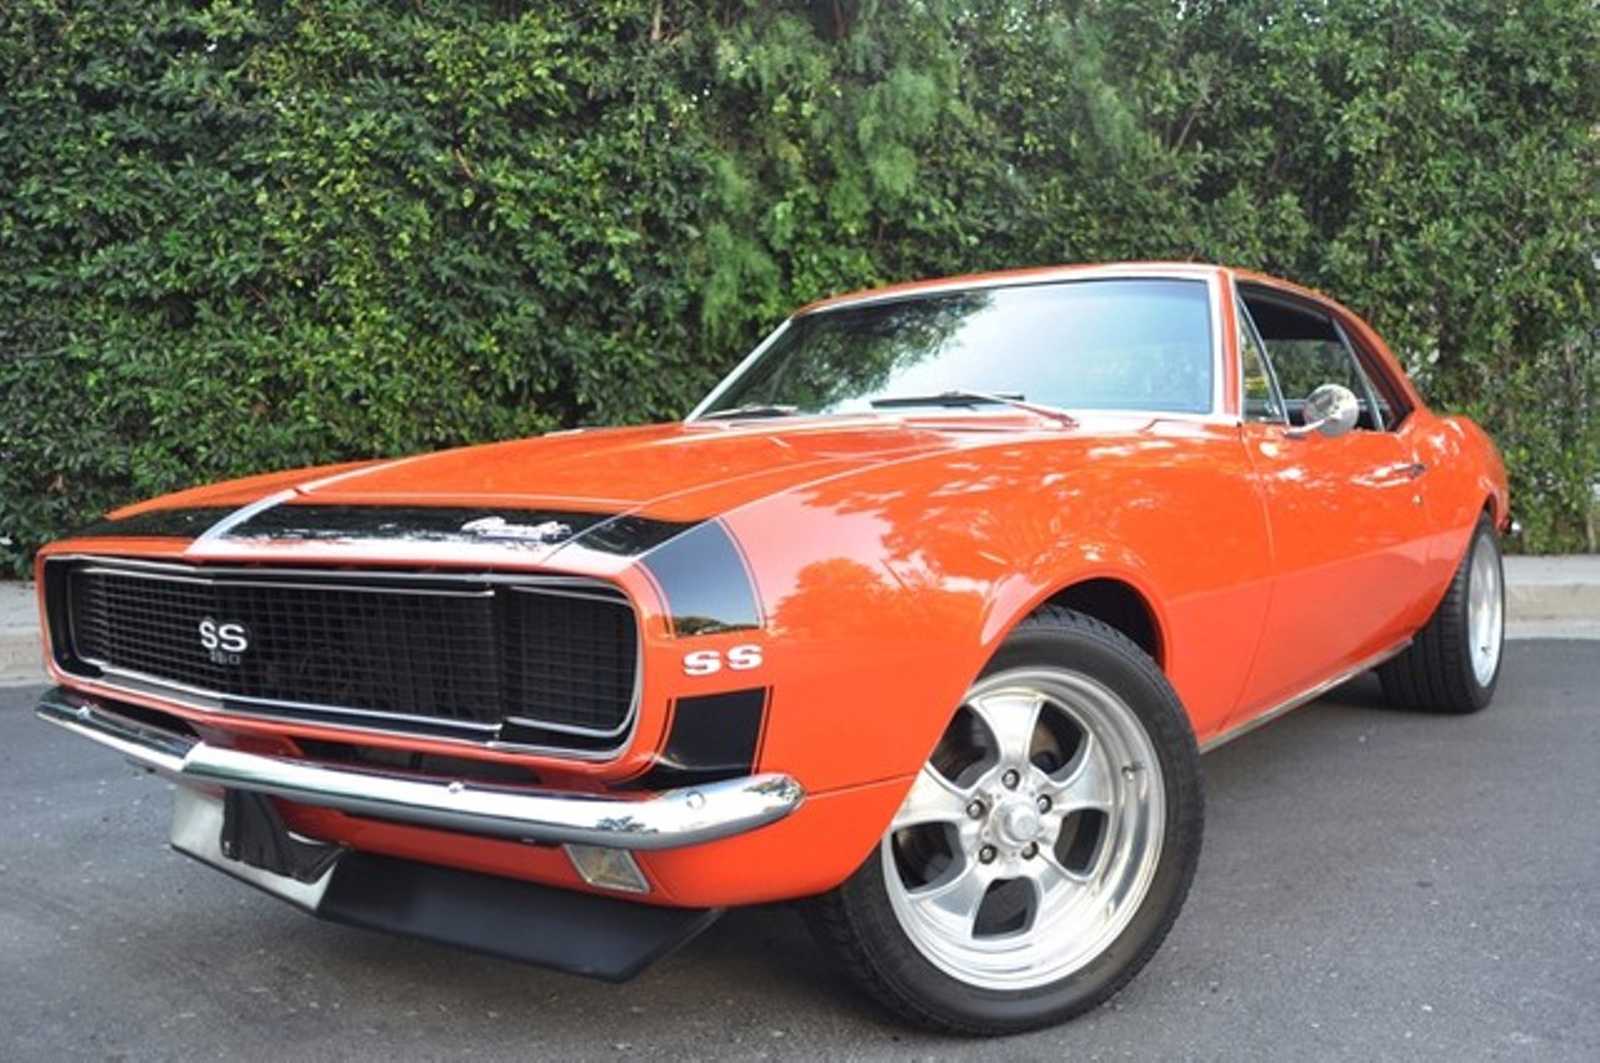 1967 Chevrolet Camaro Rsss City California Auto Fitness Class Benz 1968 Ss Rs Orange In